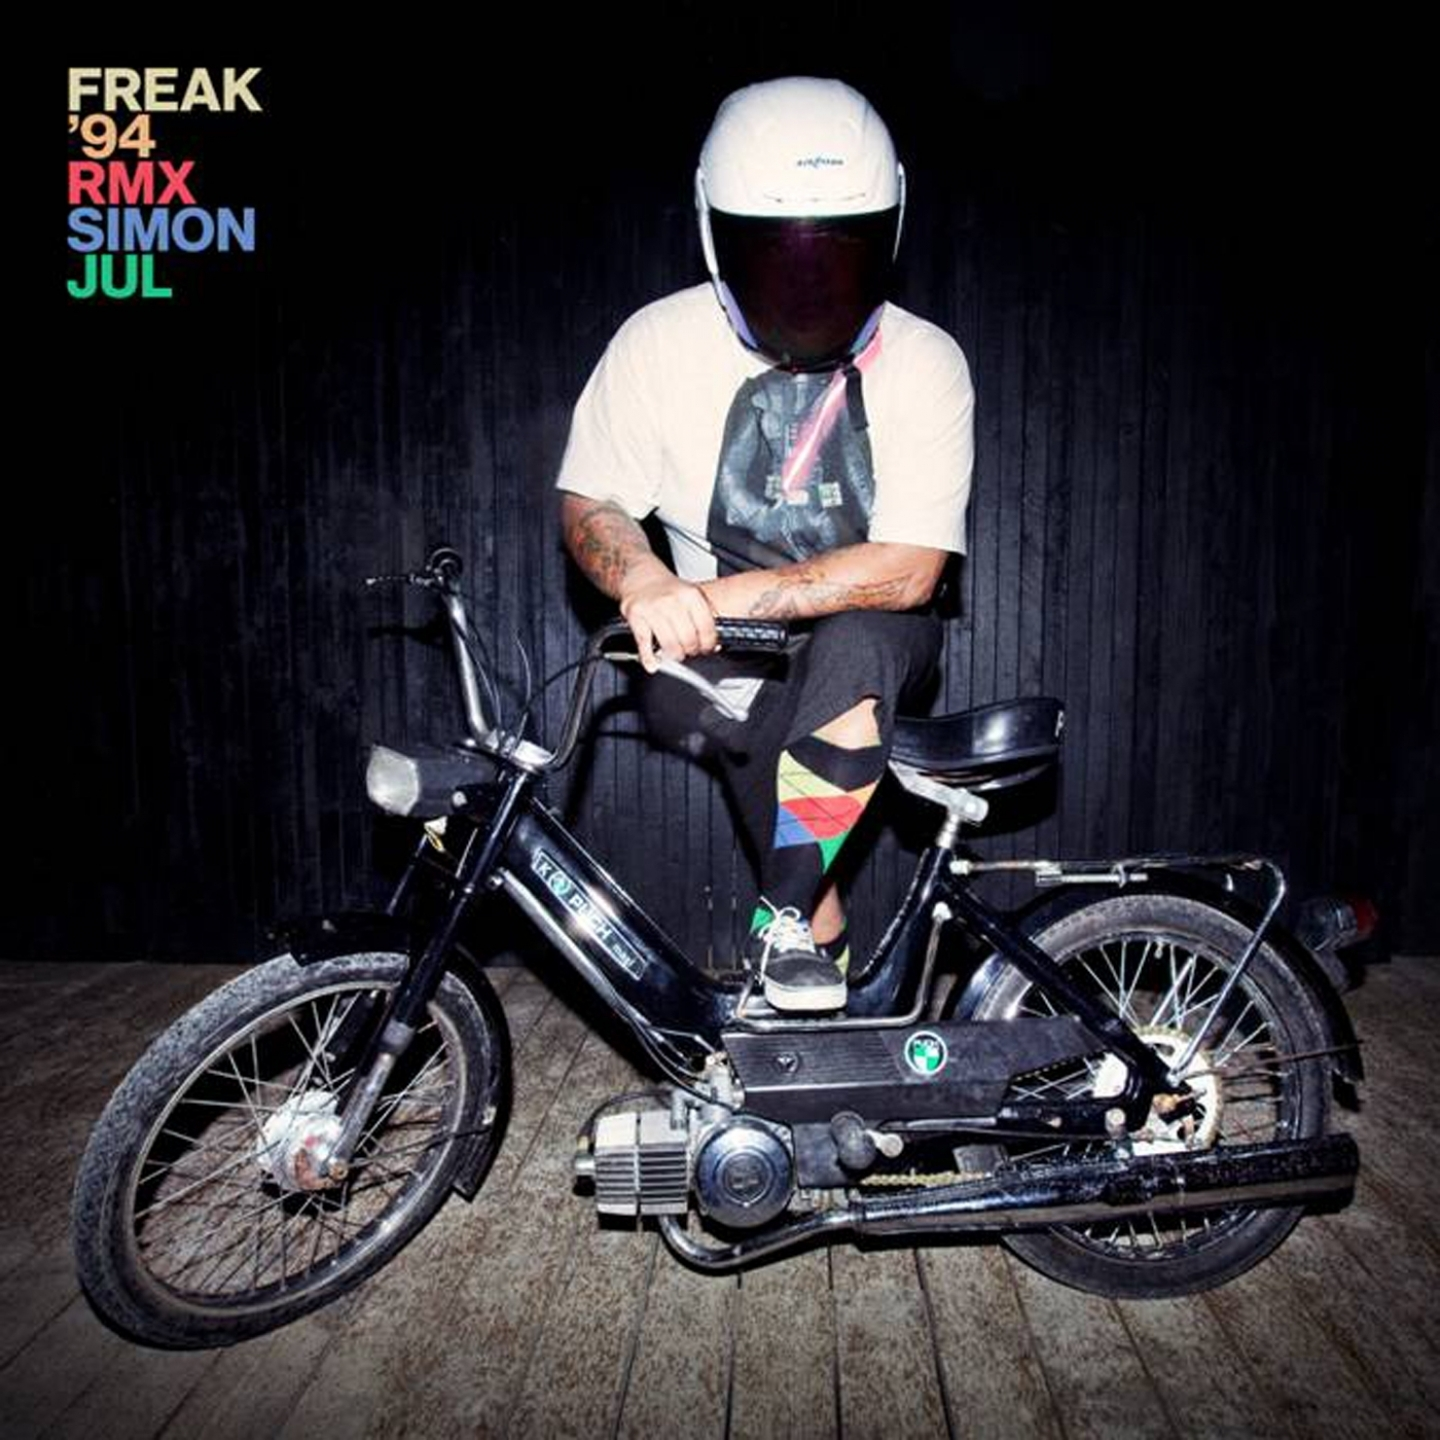 Simon Jul – 'Freak 94' (Single)